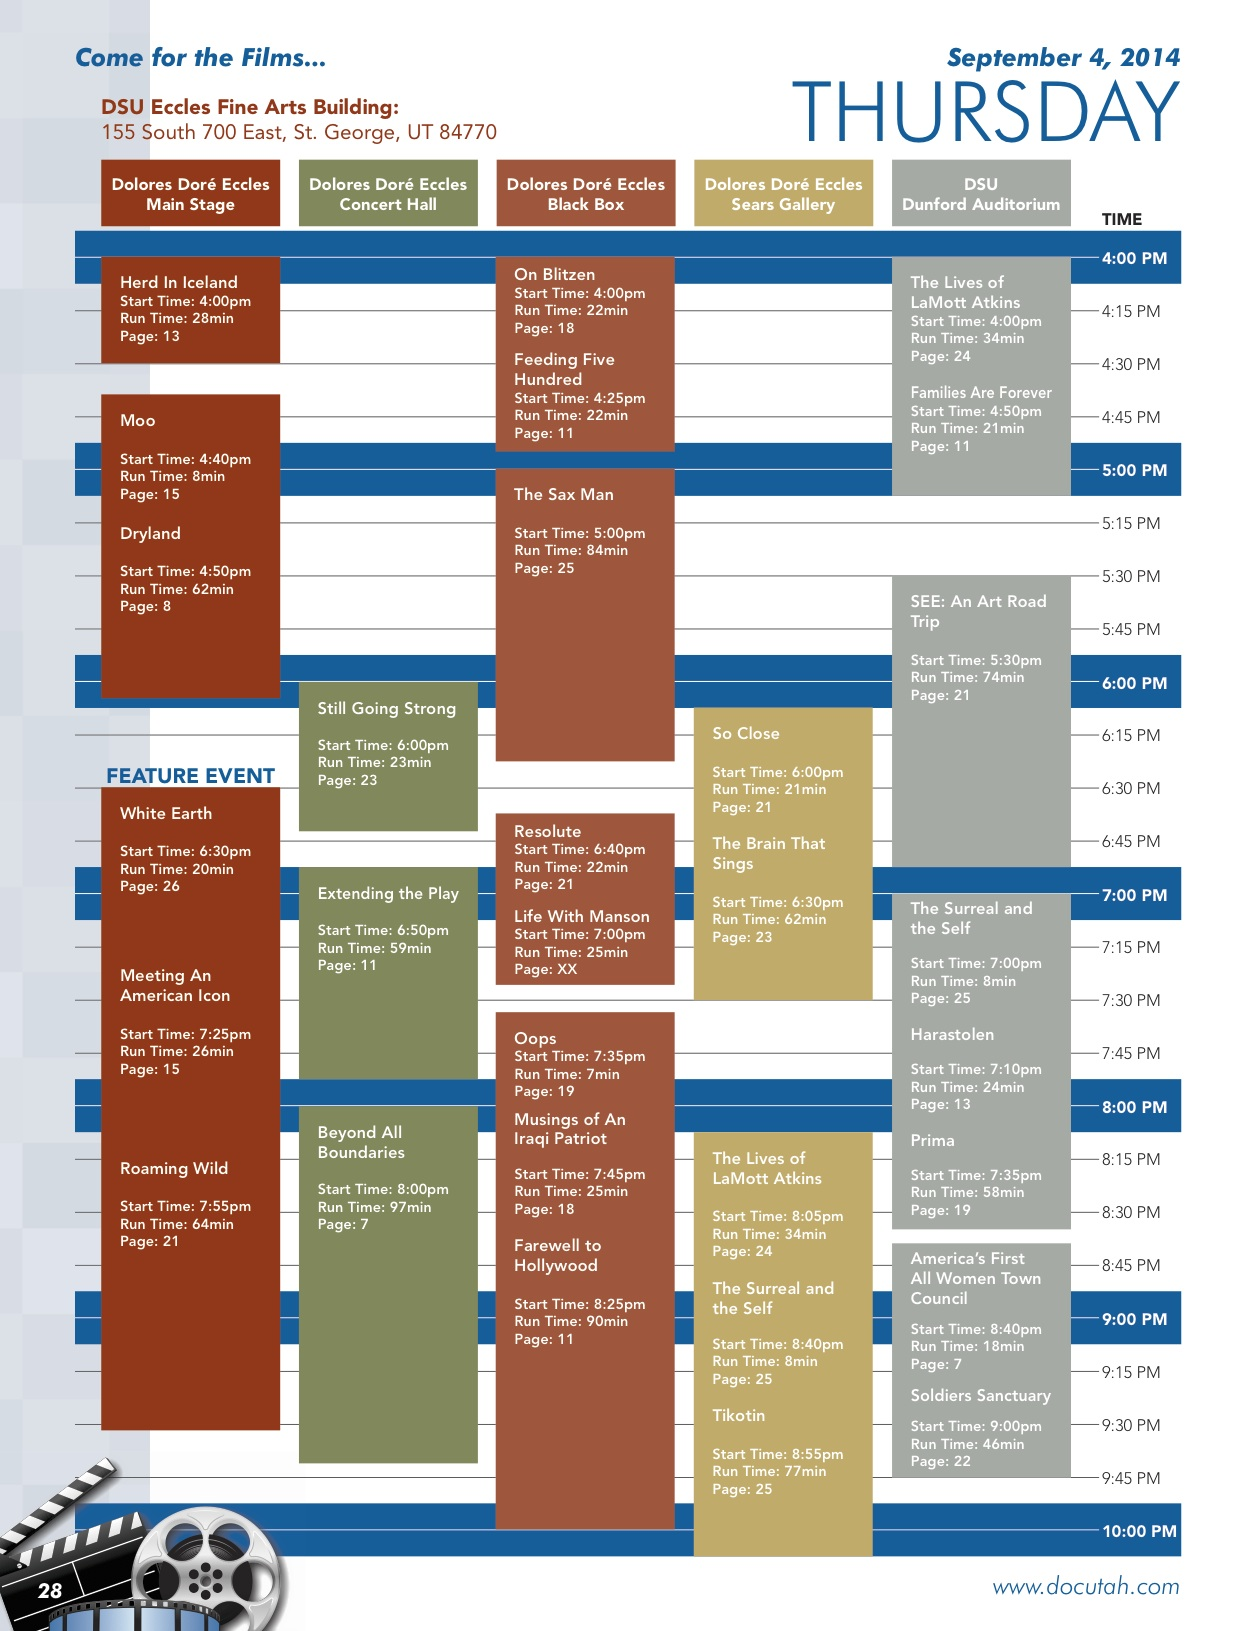 2014_DOCUTAH Festival Guide_Thursday